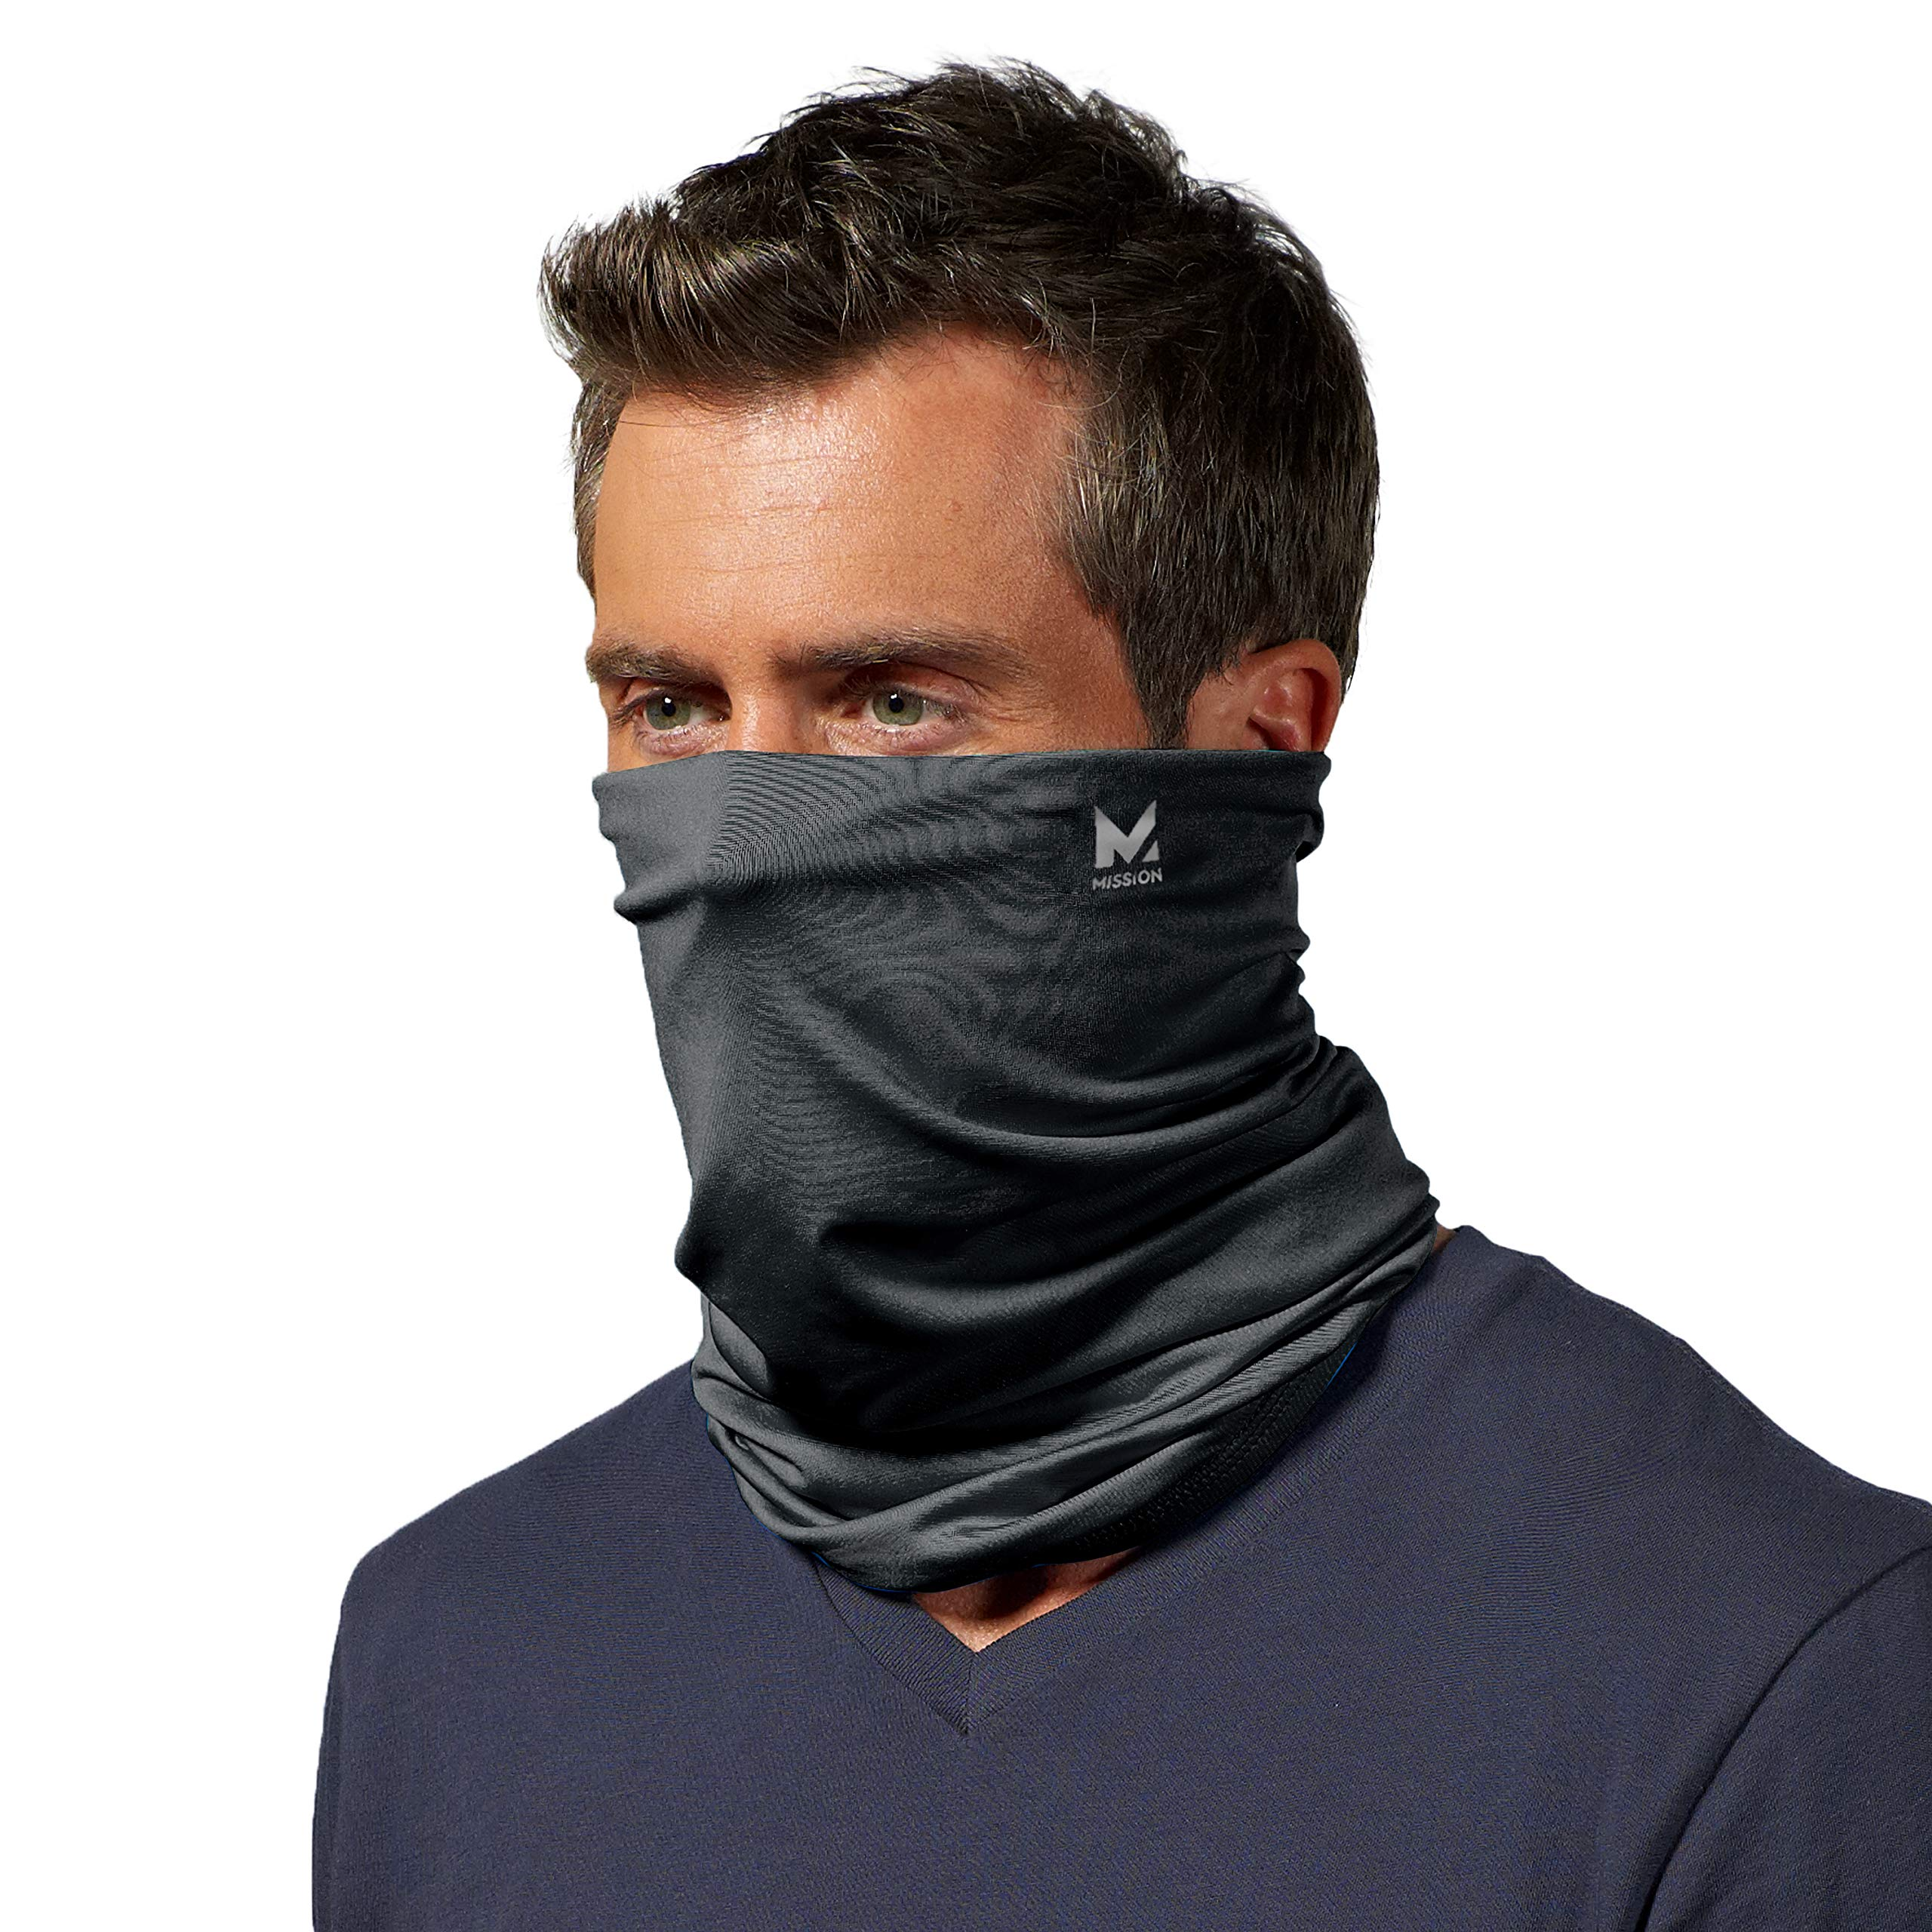 Mission Cooling Neck Gaiter 12+ Ways To Wears, Face Mask, UPF 50, Cools when Wet